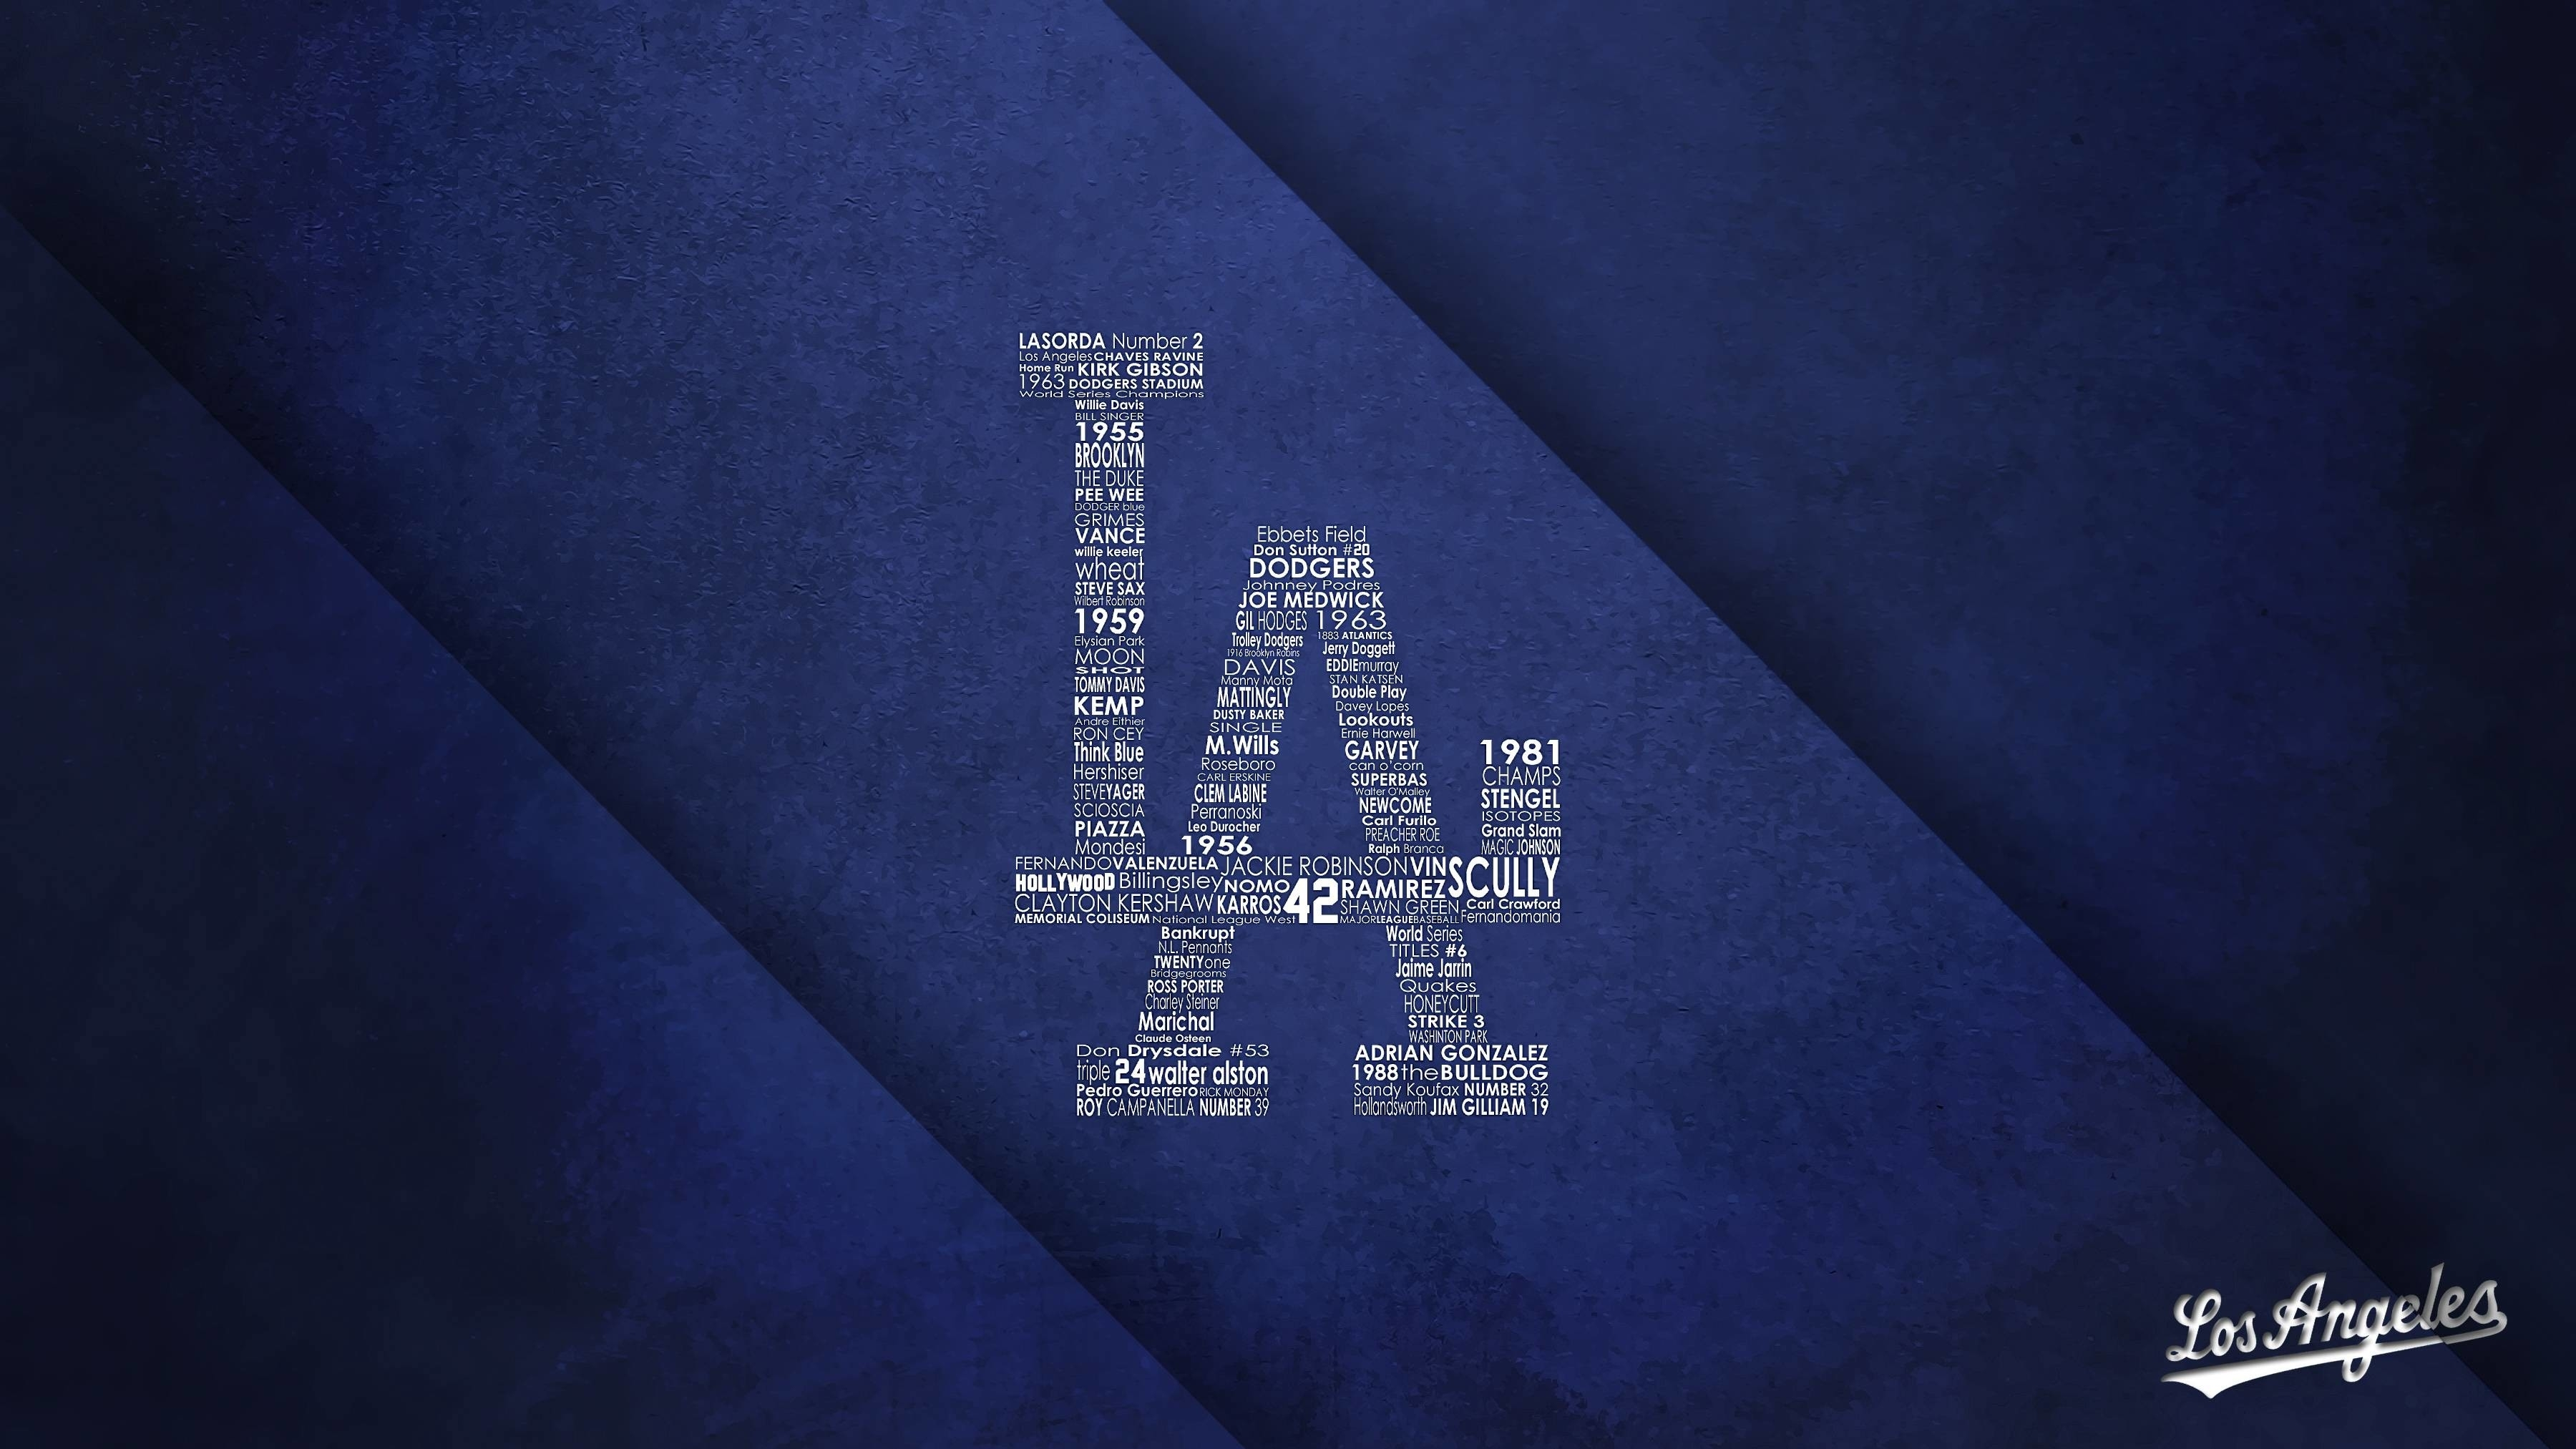 los angeles dodgers wallpaper ·①